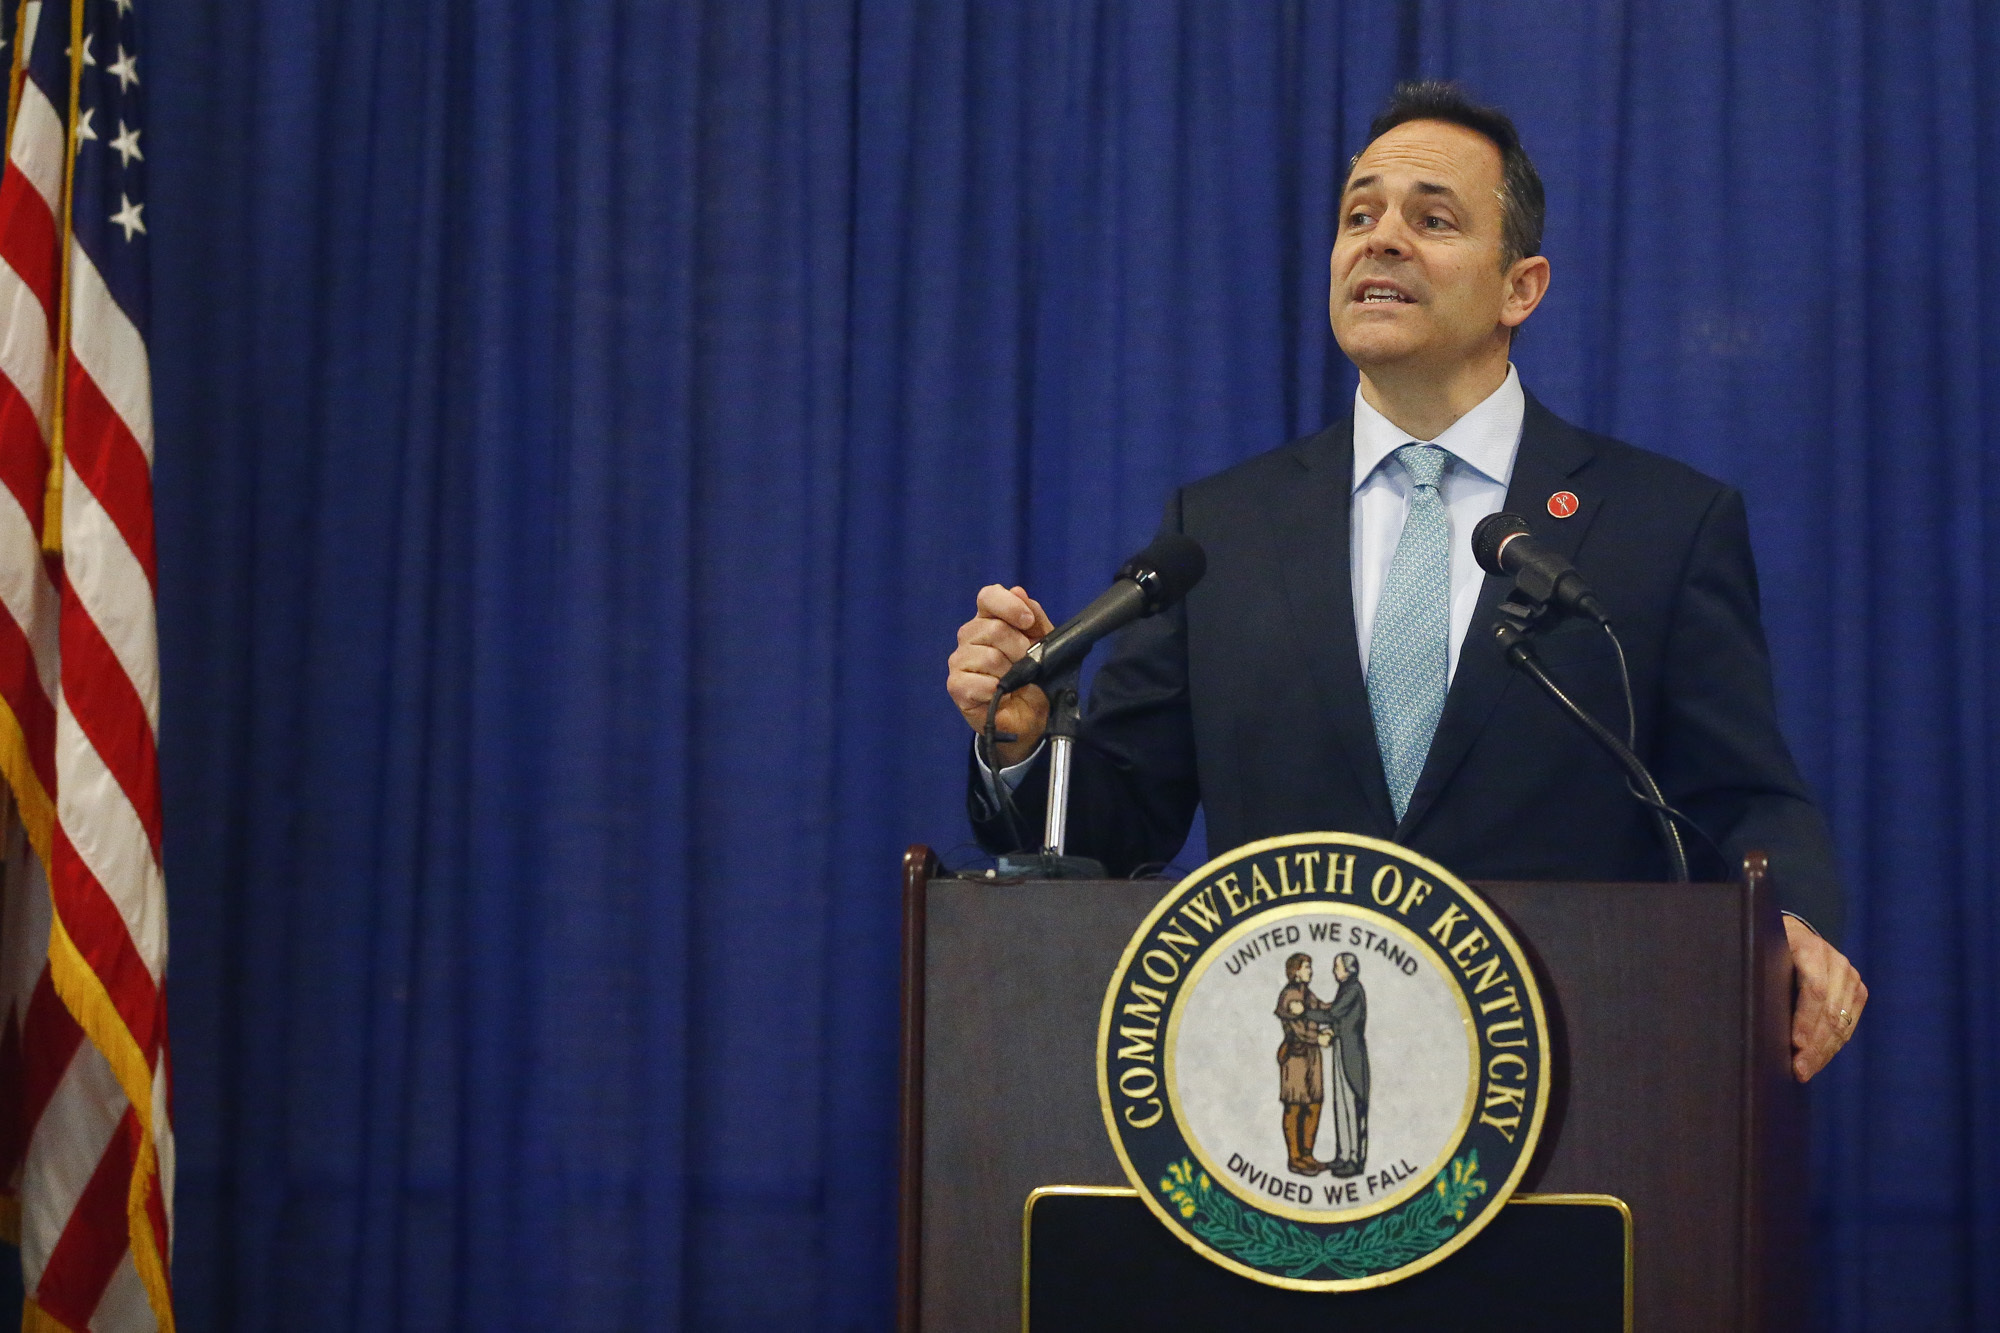 Kentucky Gov. Matt Bevin announces federal approval of Kentucky's Medicaid waiver in the Capitol Rotunda in Frankfort, Ky., Friday, Jan. 12, 2018.  Kentucky became the first state to require many of its Medicaid recipients to work to receive coverage, part of an unprecedented change to the nation's largest health insurance program under the Trump administration. (Alex Slitz/Lexington Herald-Leader via AP)